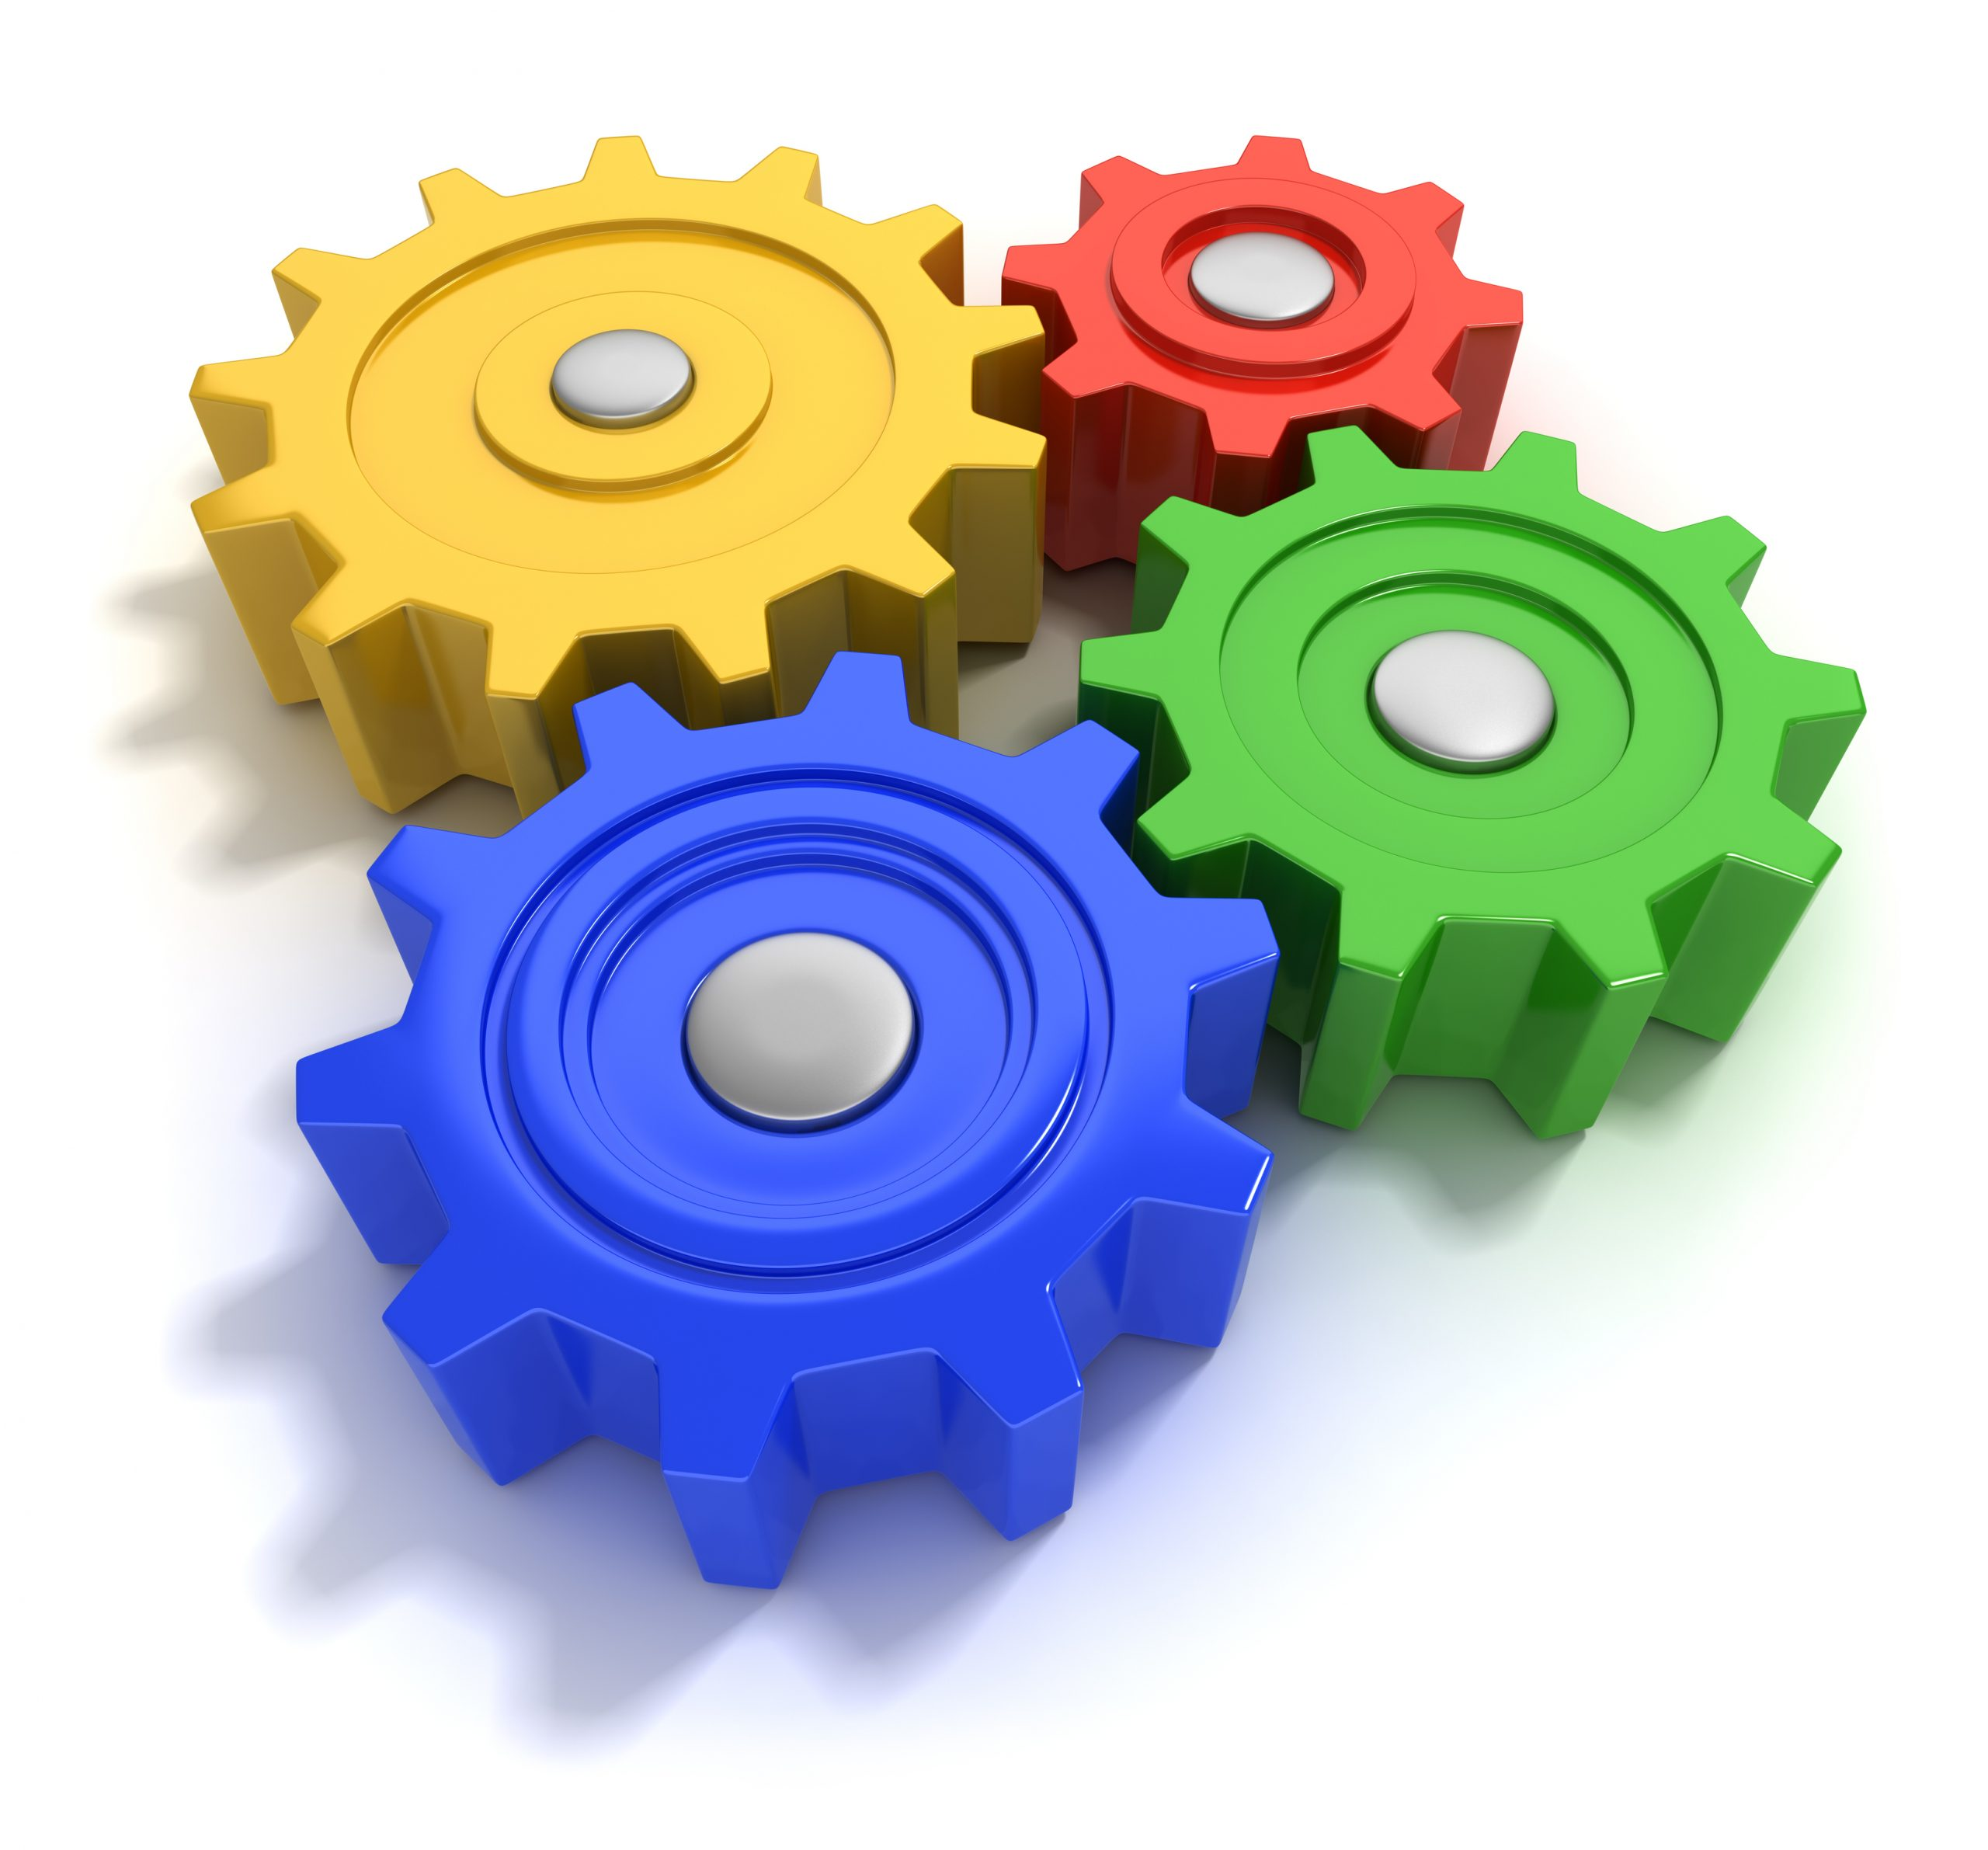 3d illustration of colourful gears